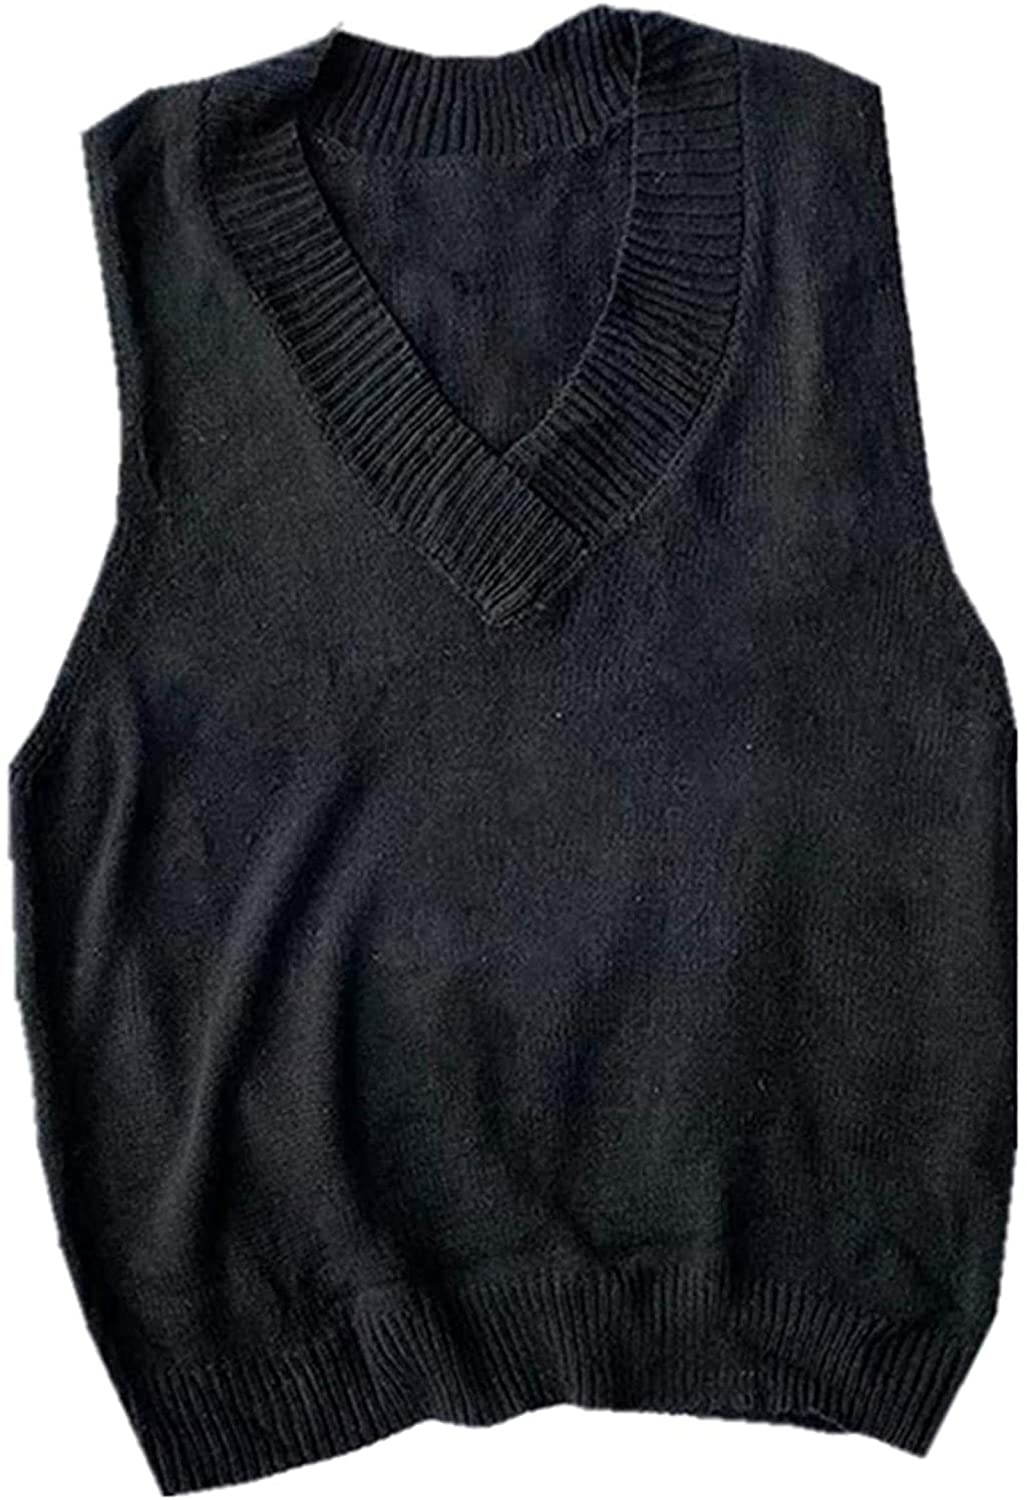 SWEATER VEST MEN LOOSE SLEEVELESS KNITTED MALE VESTS STREETWEAR KOREAN TRENDY LEISURE V-NECK SOLID STYLISH CHIC